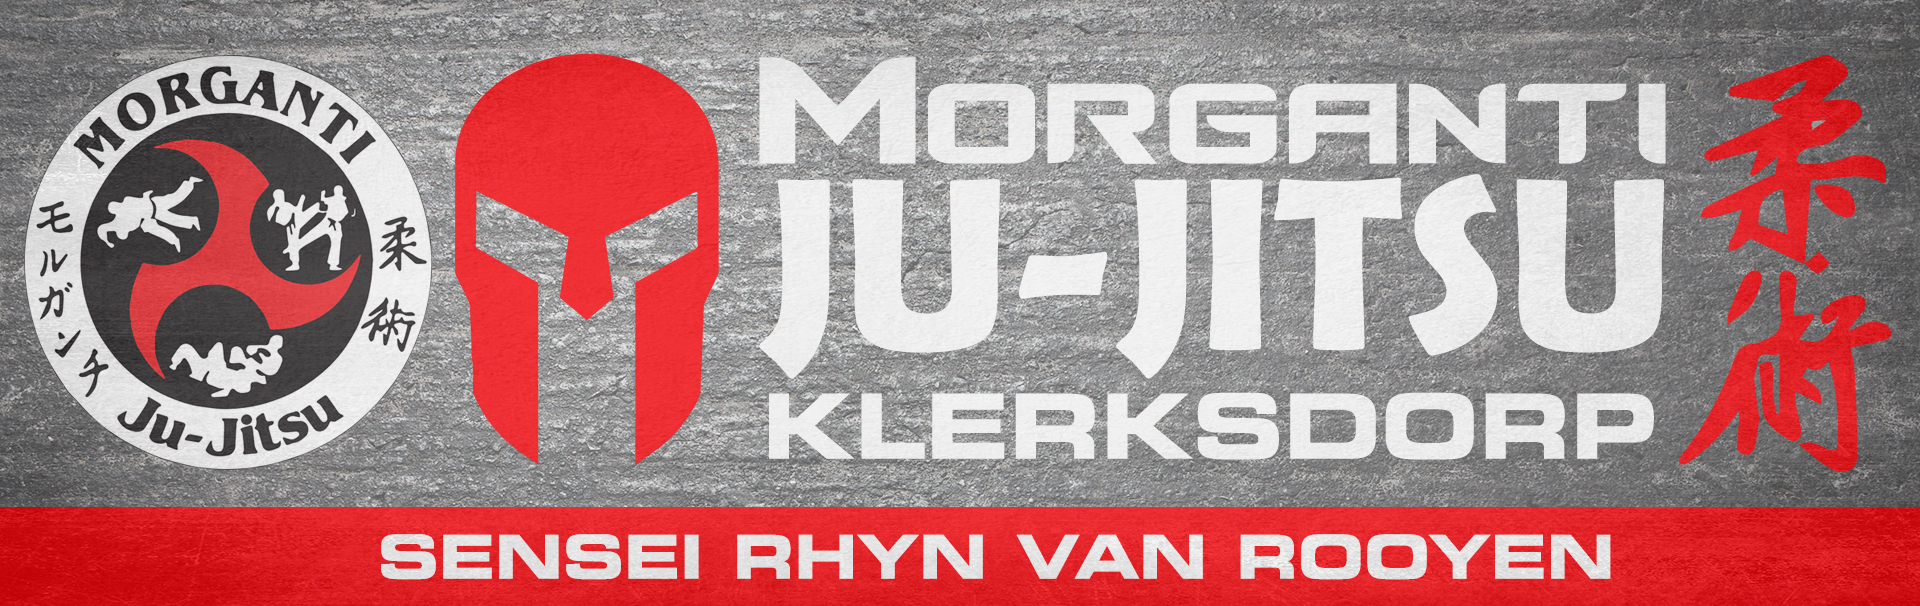 MJJ SA Competition Klerksdorp 9 April 2019 | Morganti Ju-Jitsu Klerksdorp